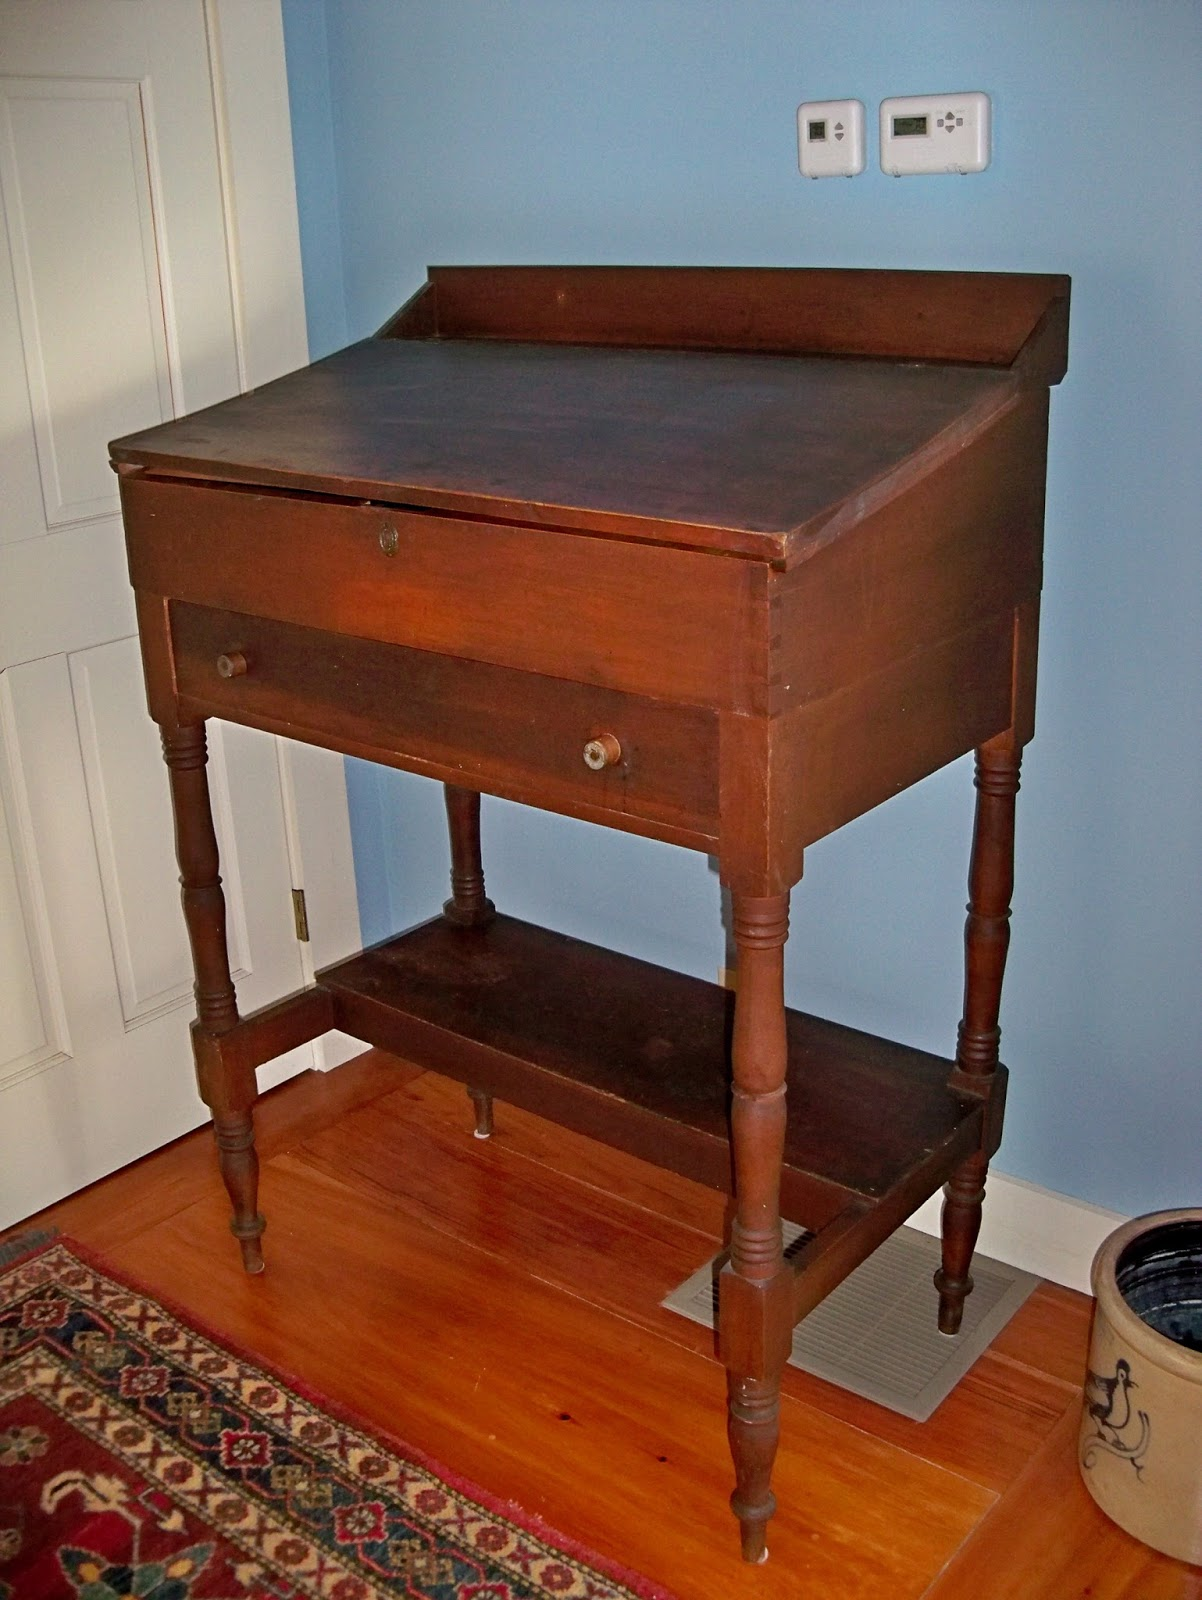 school master desk antique New hampshire origin hand made - ANTIQUE COUNTRY STAND UP TEACHER'S DESK - FOR SALE Goshen Antiques